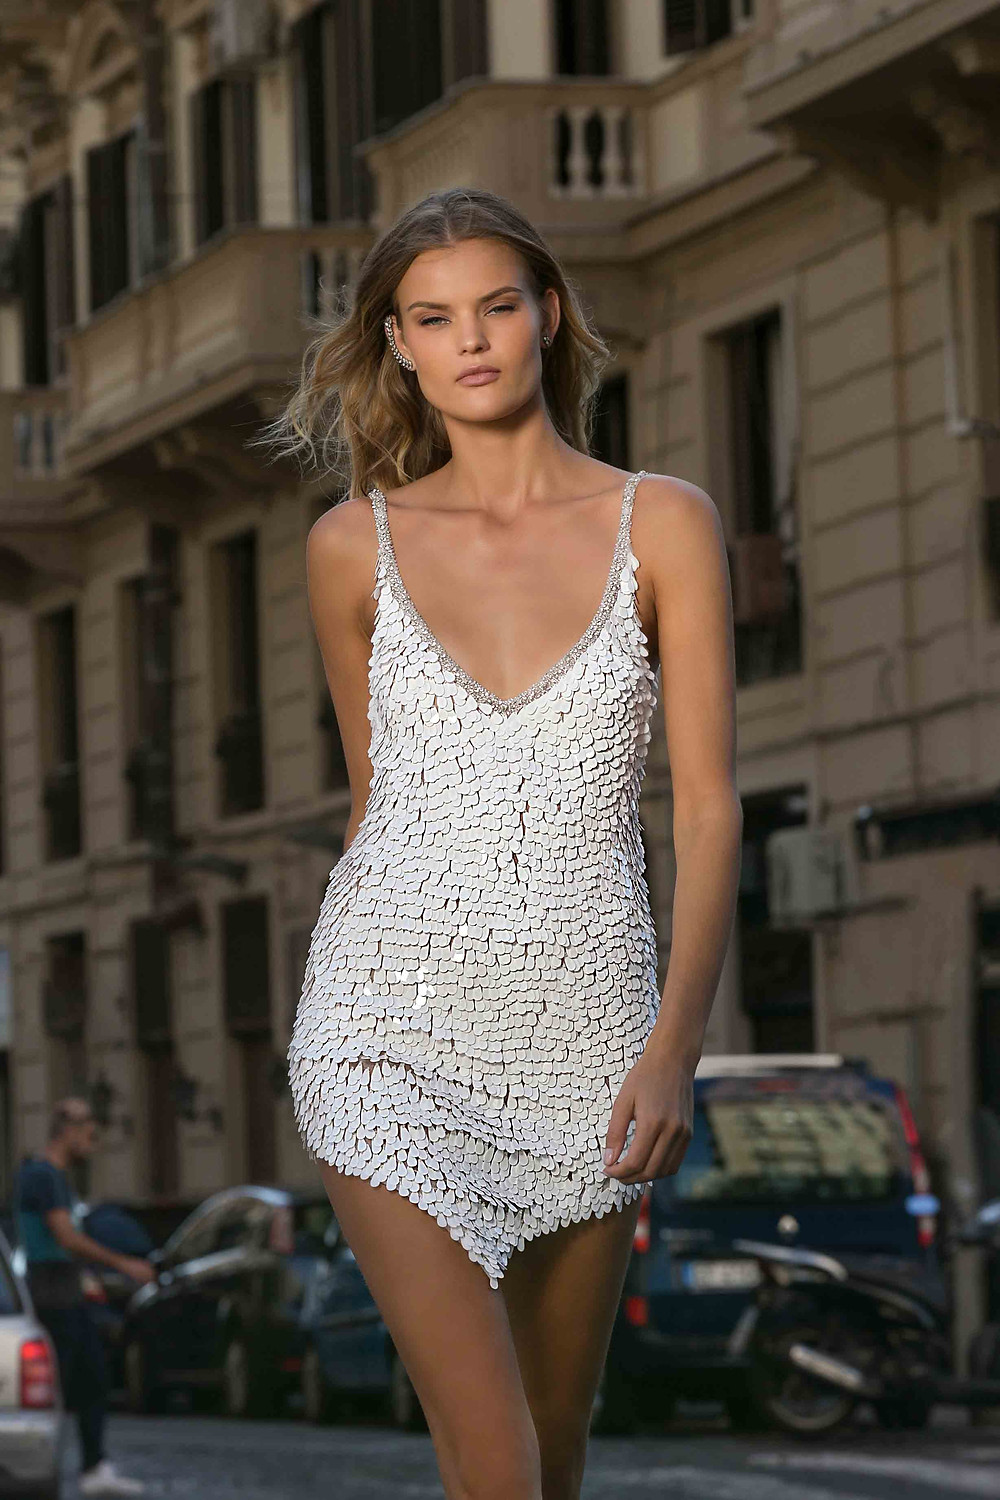 A short wedding dress with thin straps, a low v neckline and sequins